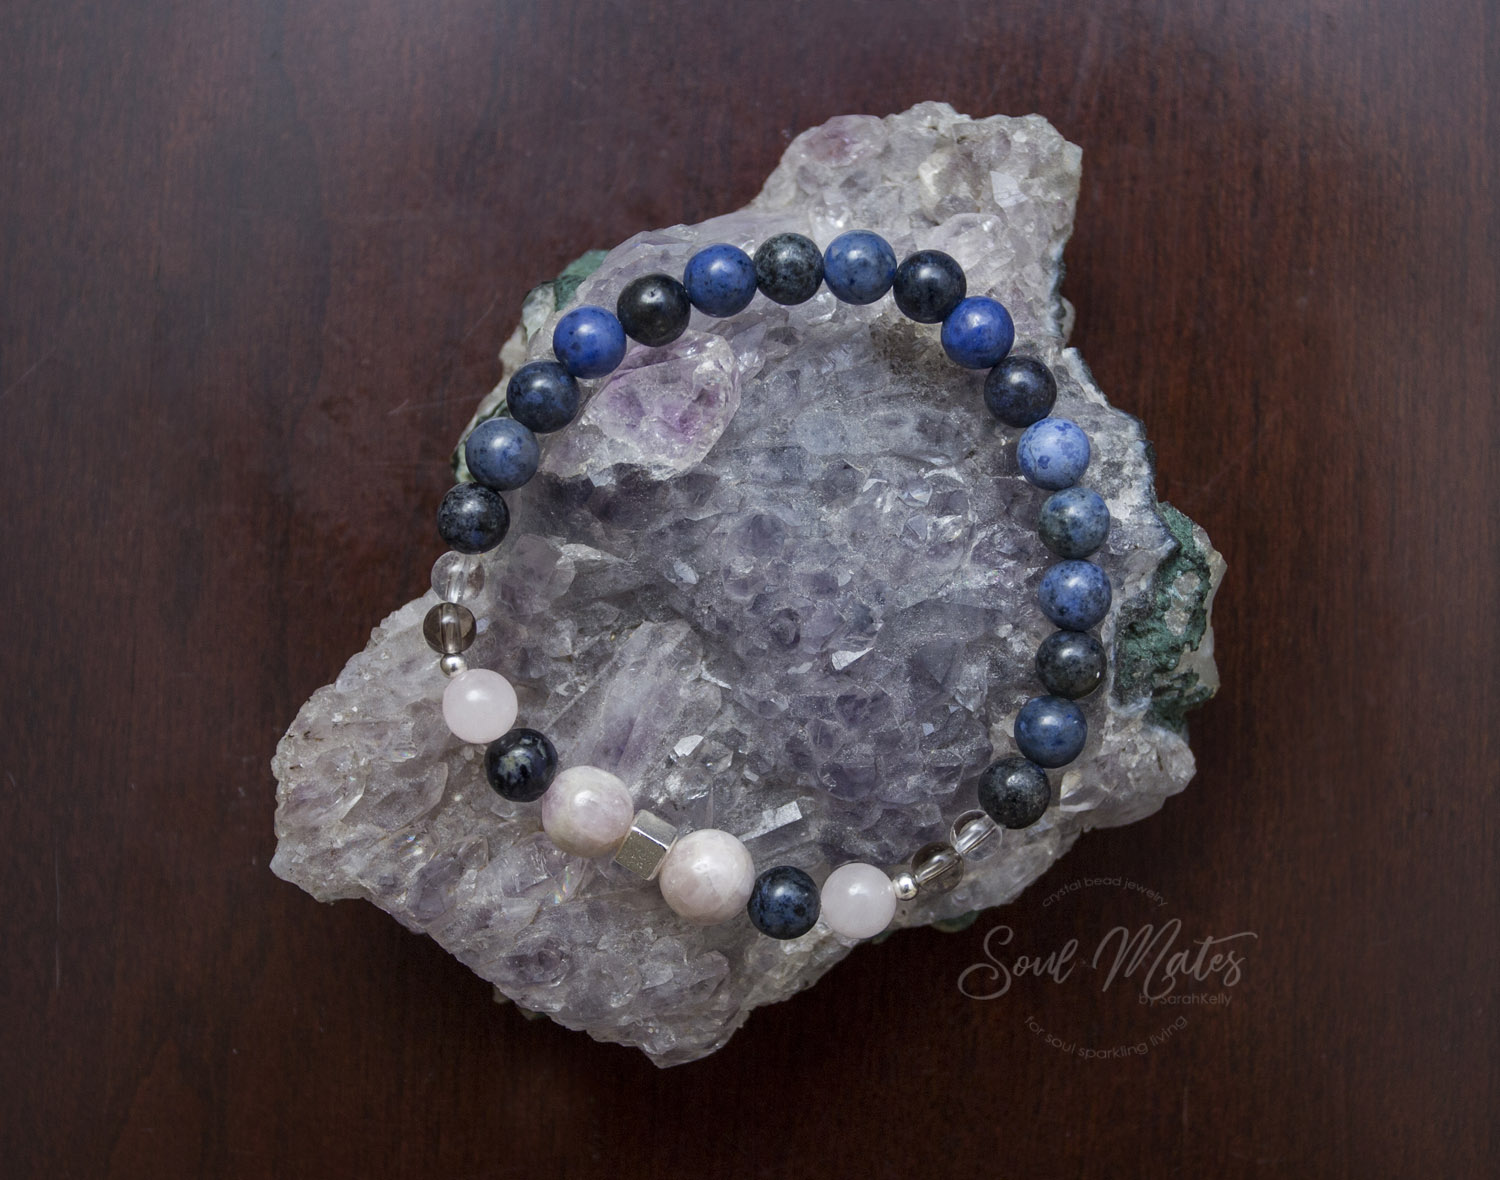 Intuition  - Dumortierite and Kunzite make a powerful combination to connect to intuitive ability, universal and spiritual connection through a clear mind.  Great for day, night wear and meditation.  $30